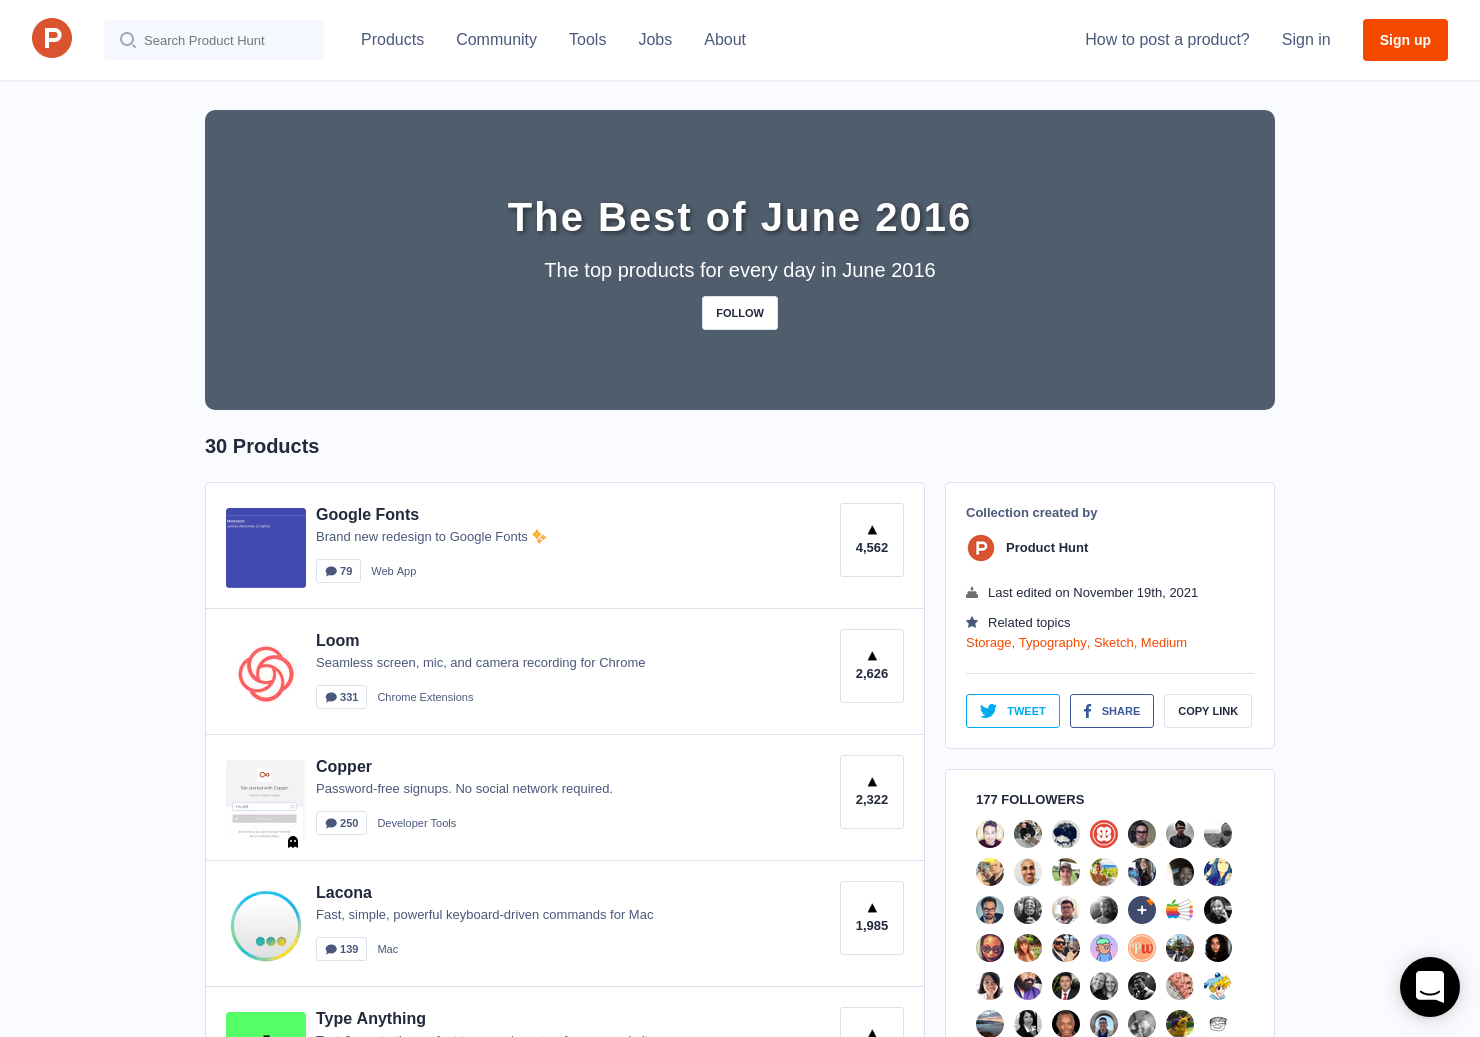 The Best of June 2016 - Product Hunt